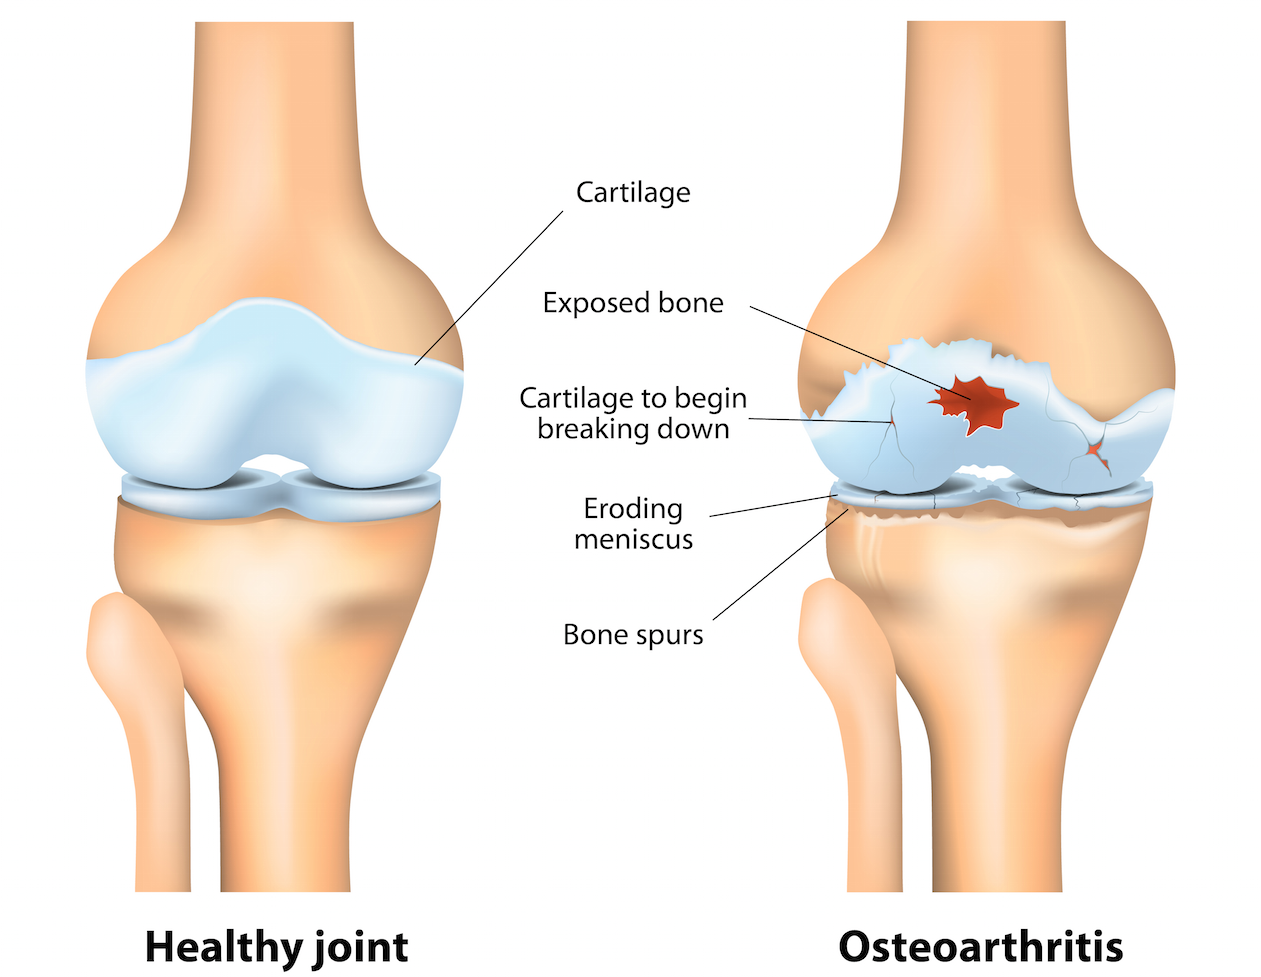 A healthy and an osteoarthritic joint.from www.shutterstock.com